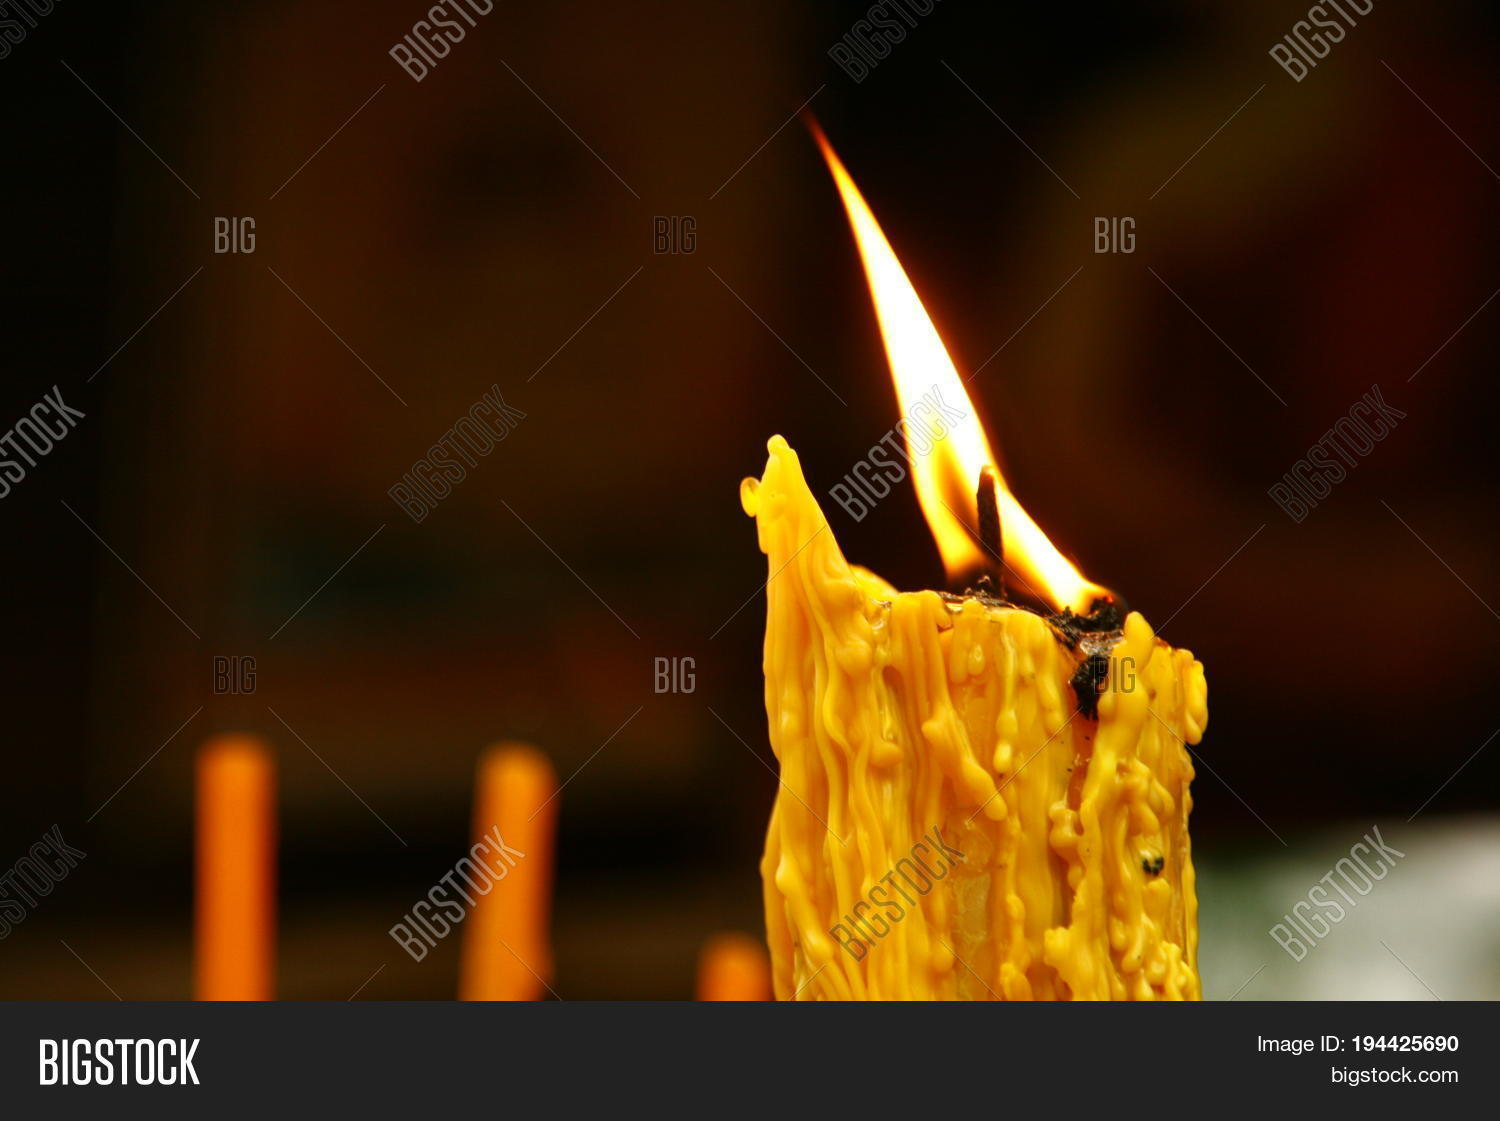 Lighted Candle Lit Image & Photo (Free Trial) | Bigstock